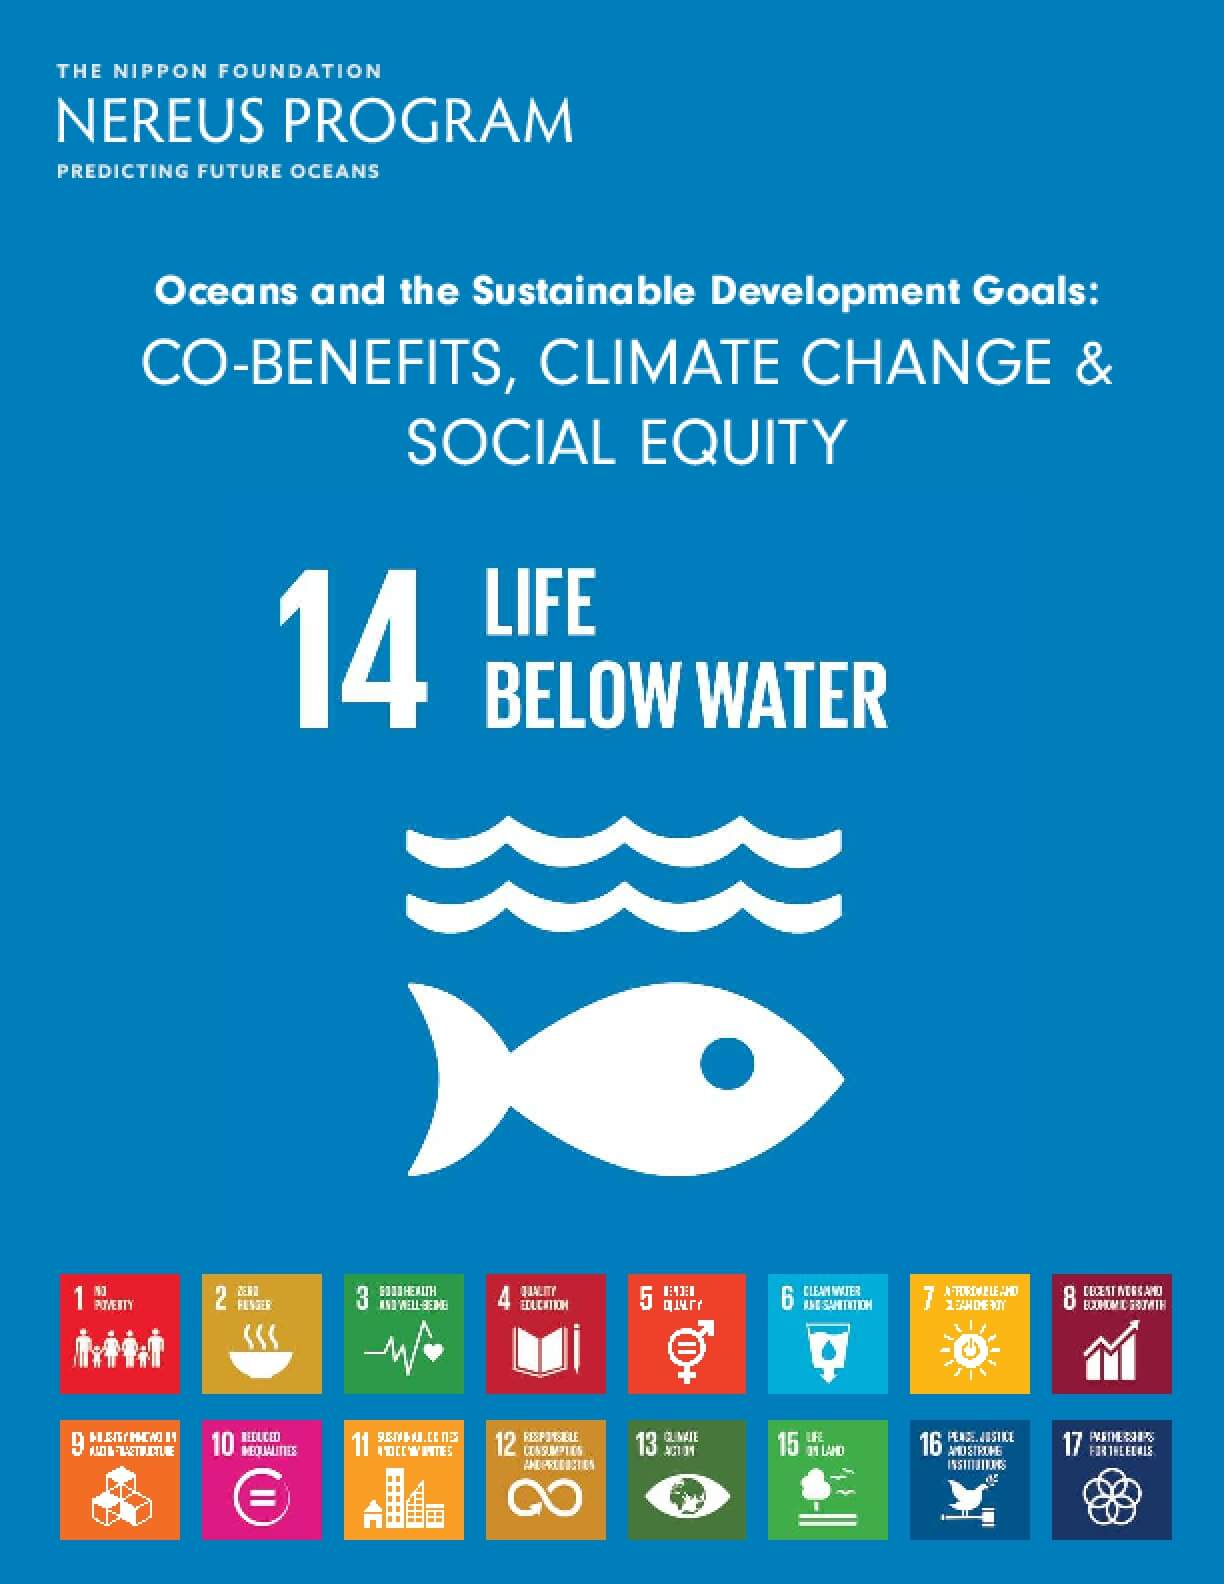 Oceans and the Sustainable Development Goals: Co-Benefits, Climate Change & Social Equity